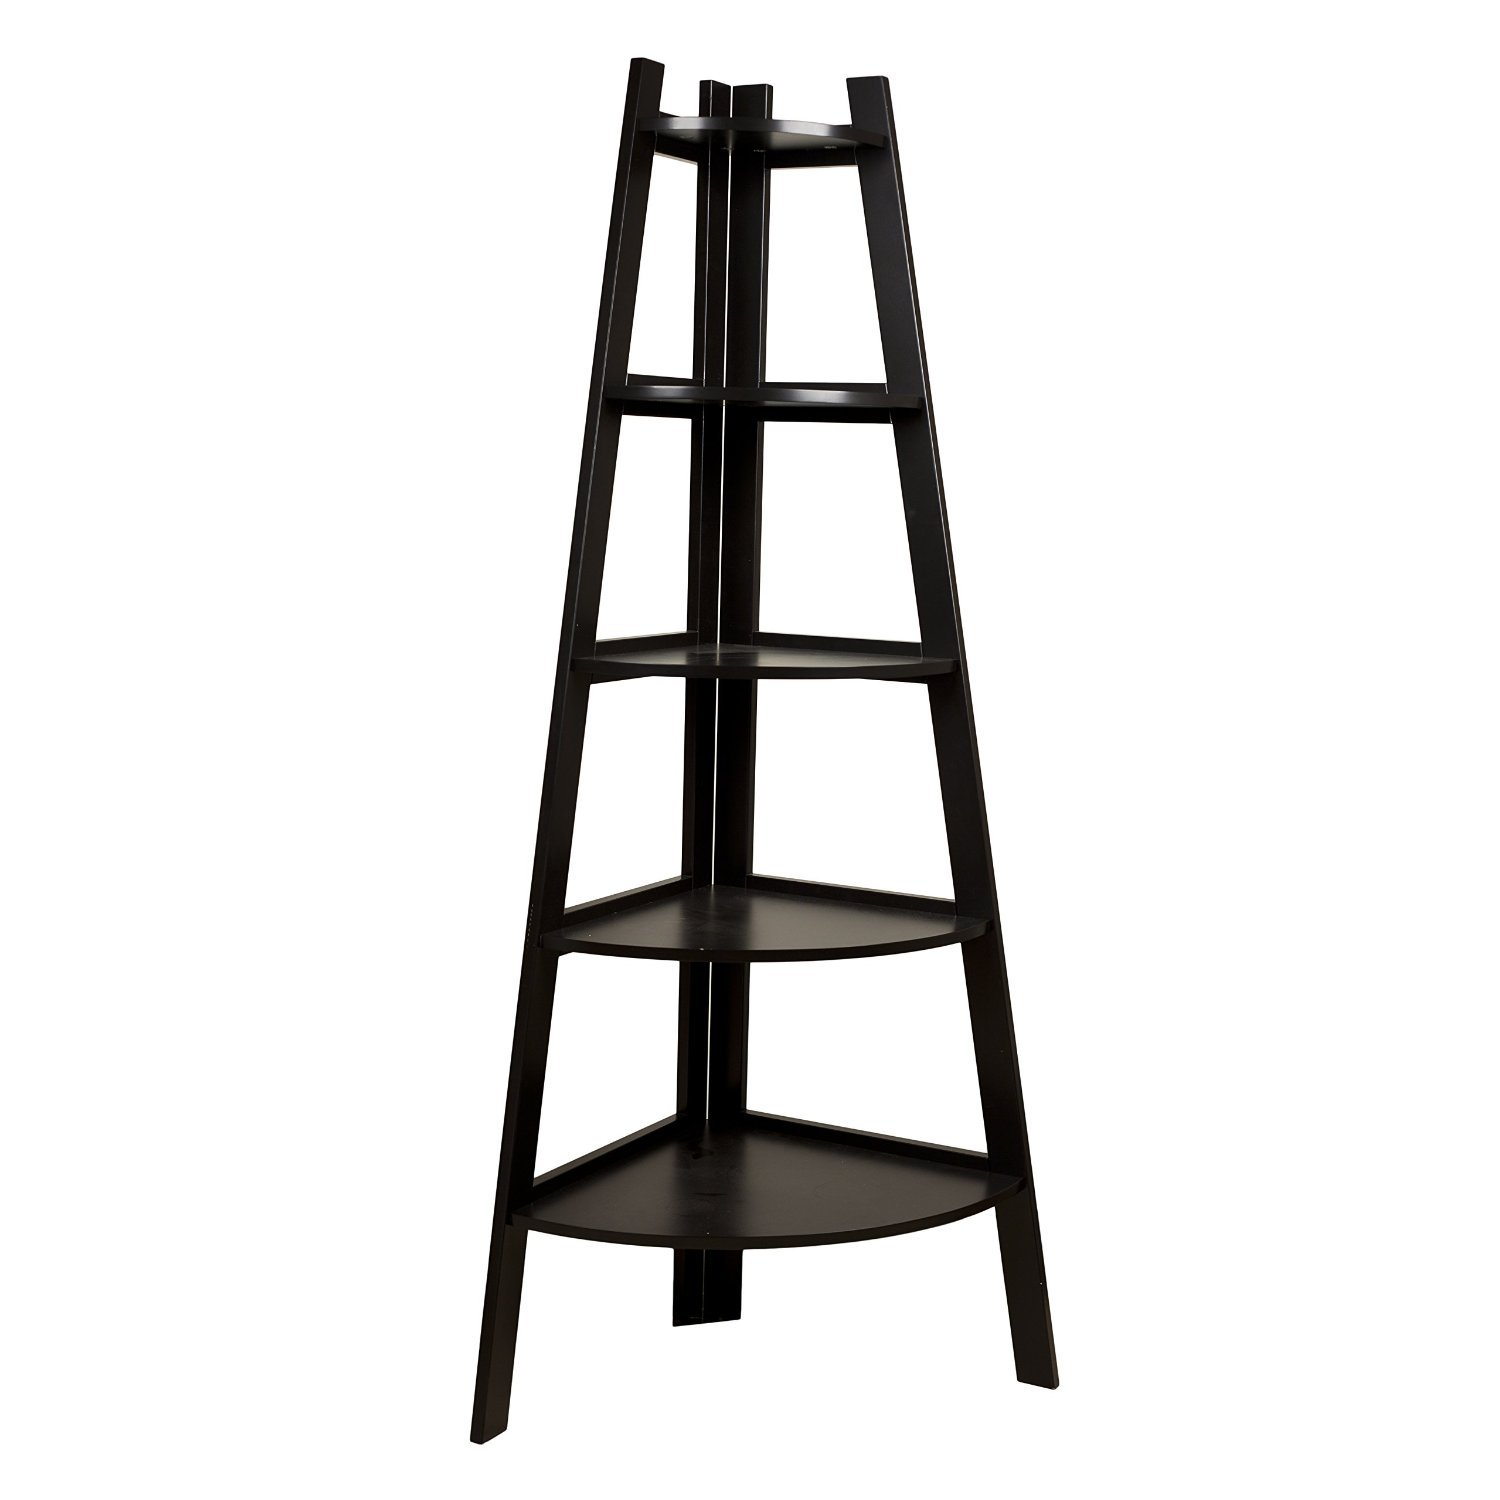 Five Tier Corner Ladder Display Bookshelf - Black by SQUARE FURNITURE